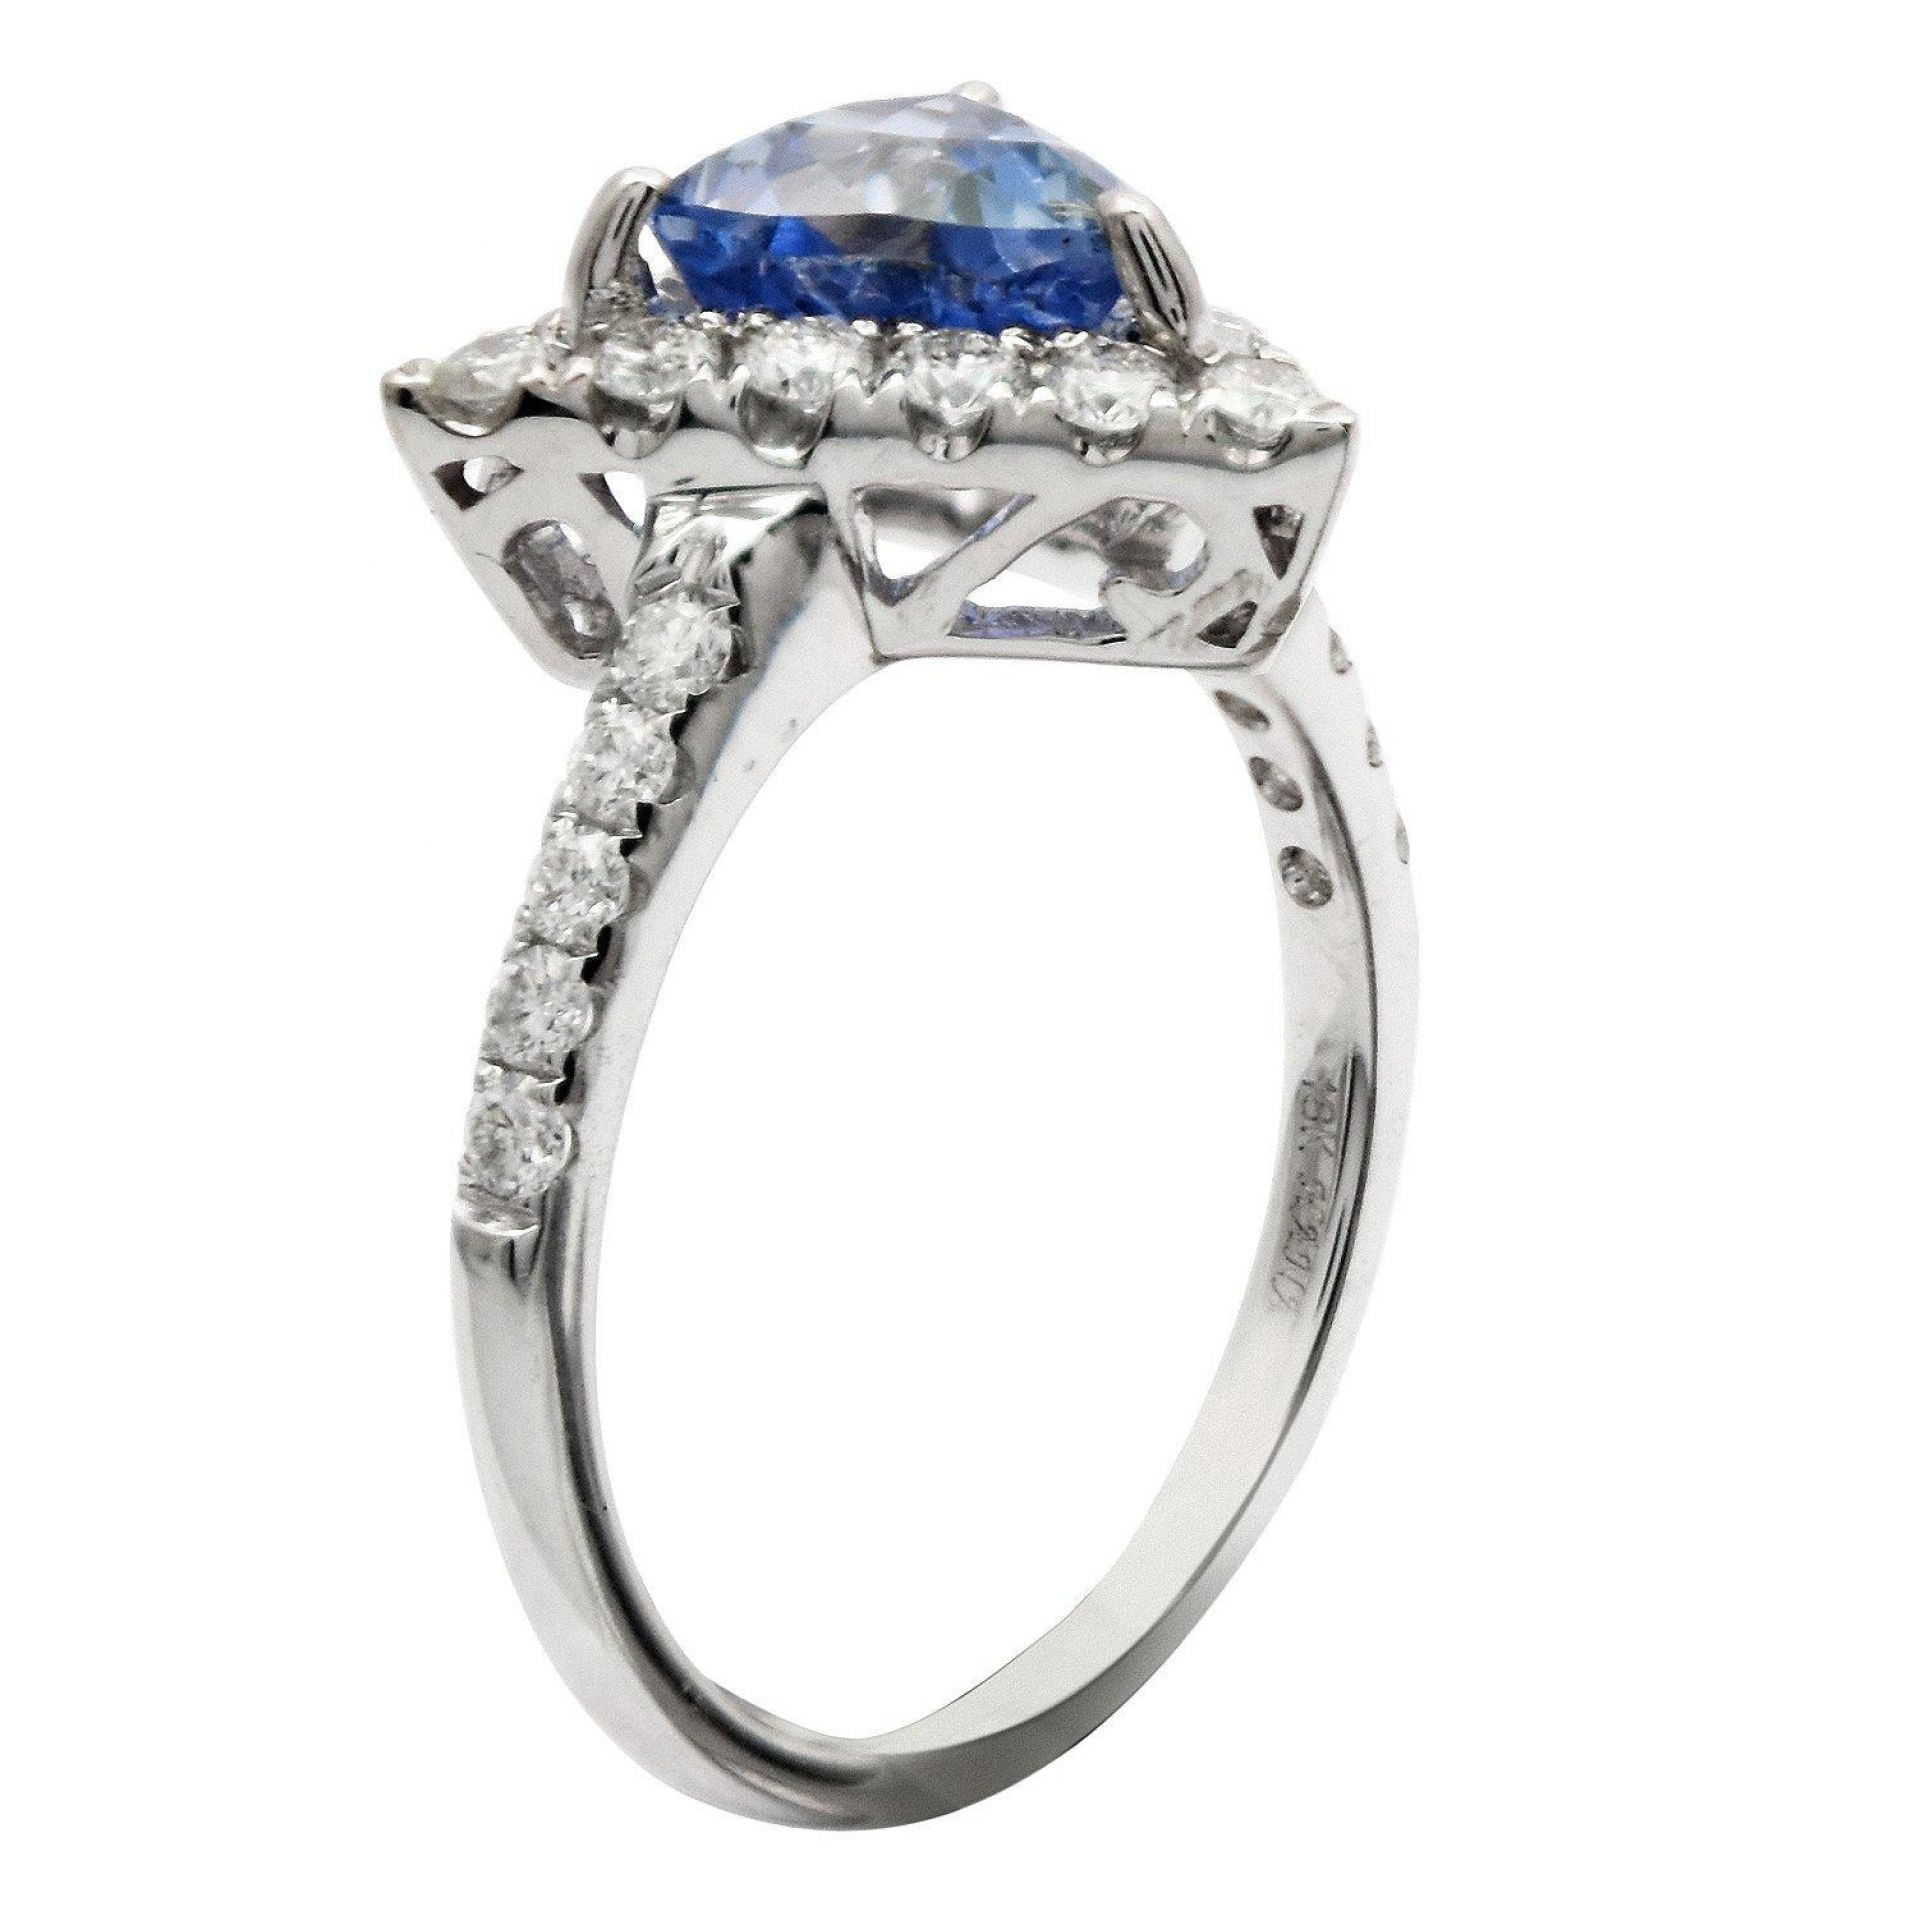 1.68ct UNHEATED Blue Sapphire and 0.62ctw Diamond 18K White Gold Ring